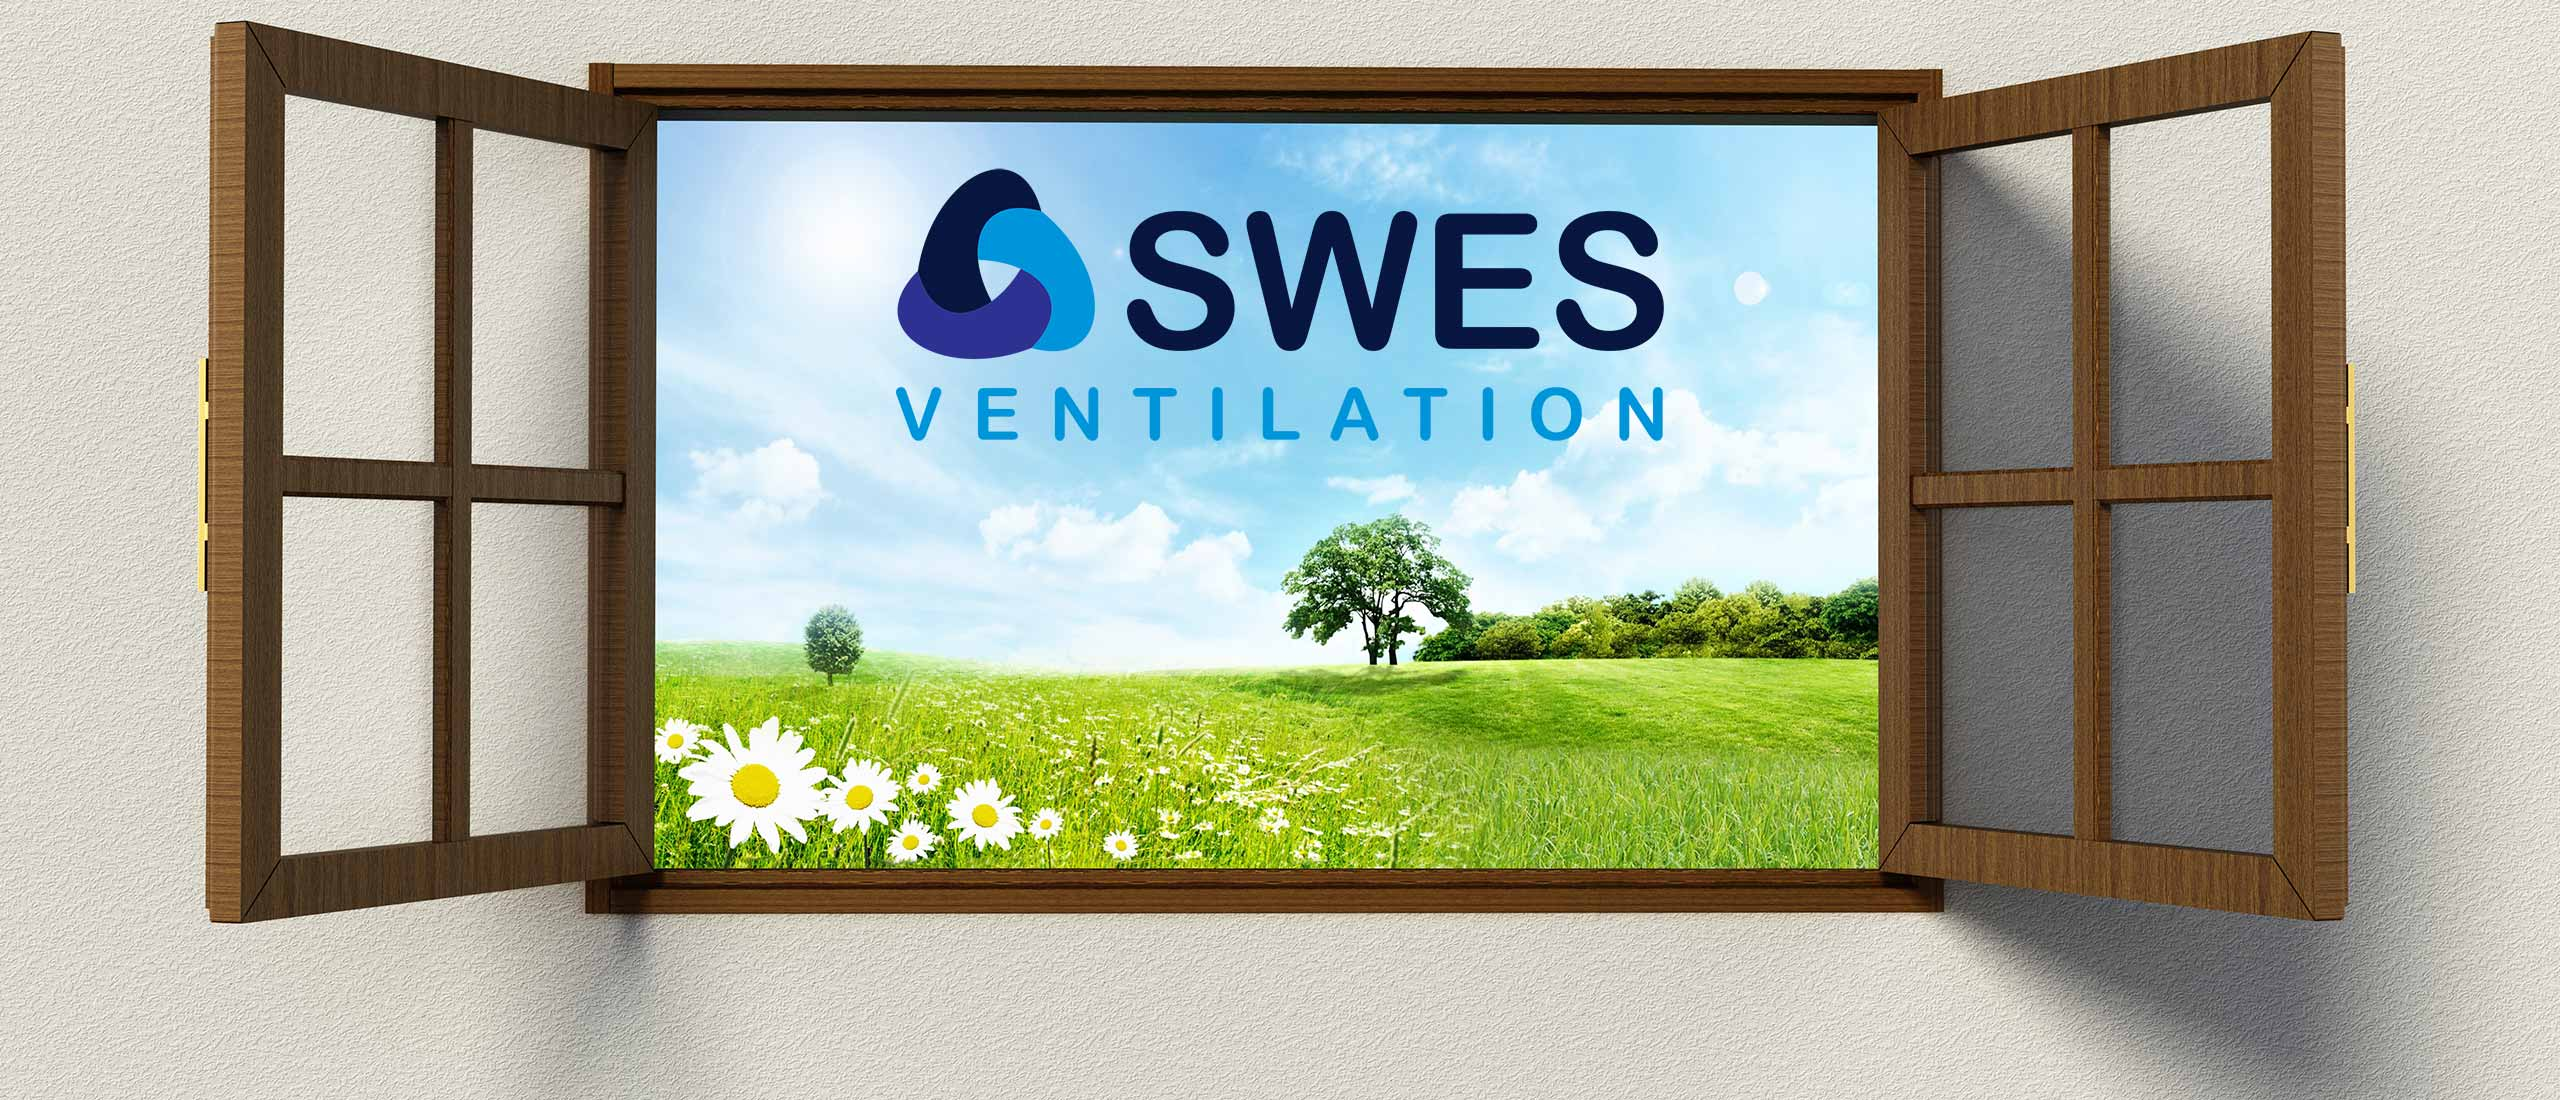 SWES Ventilation Systems